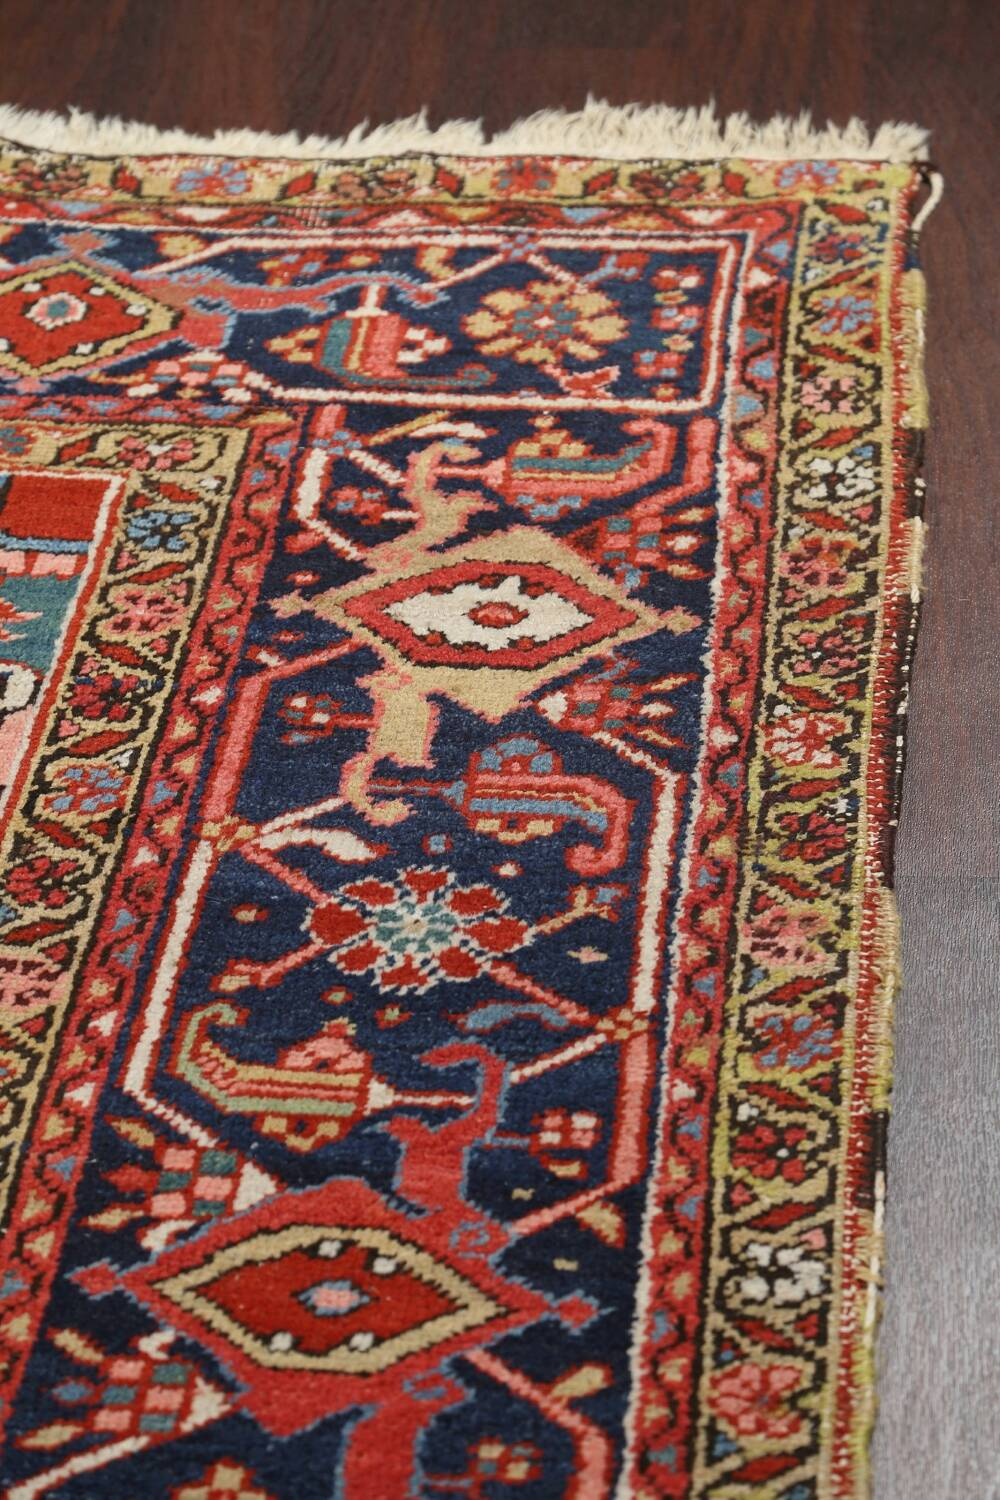 Pre-1900 Antique Vegetable Dye Heriz Serapi Persian Area Rug 10x13 image 16